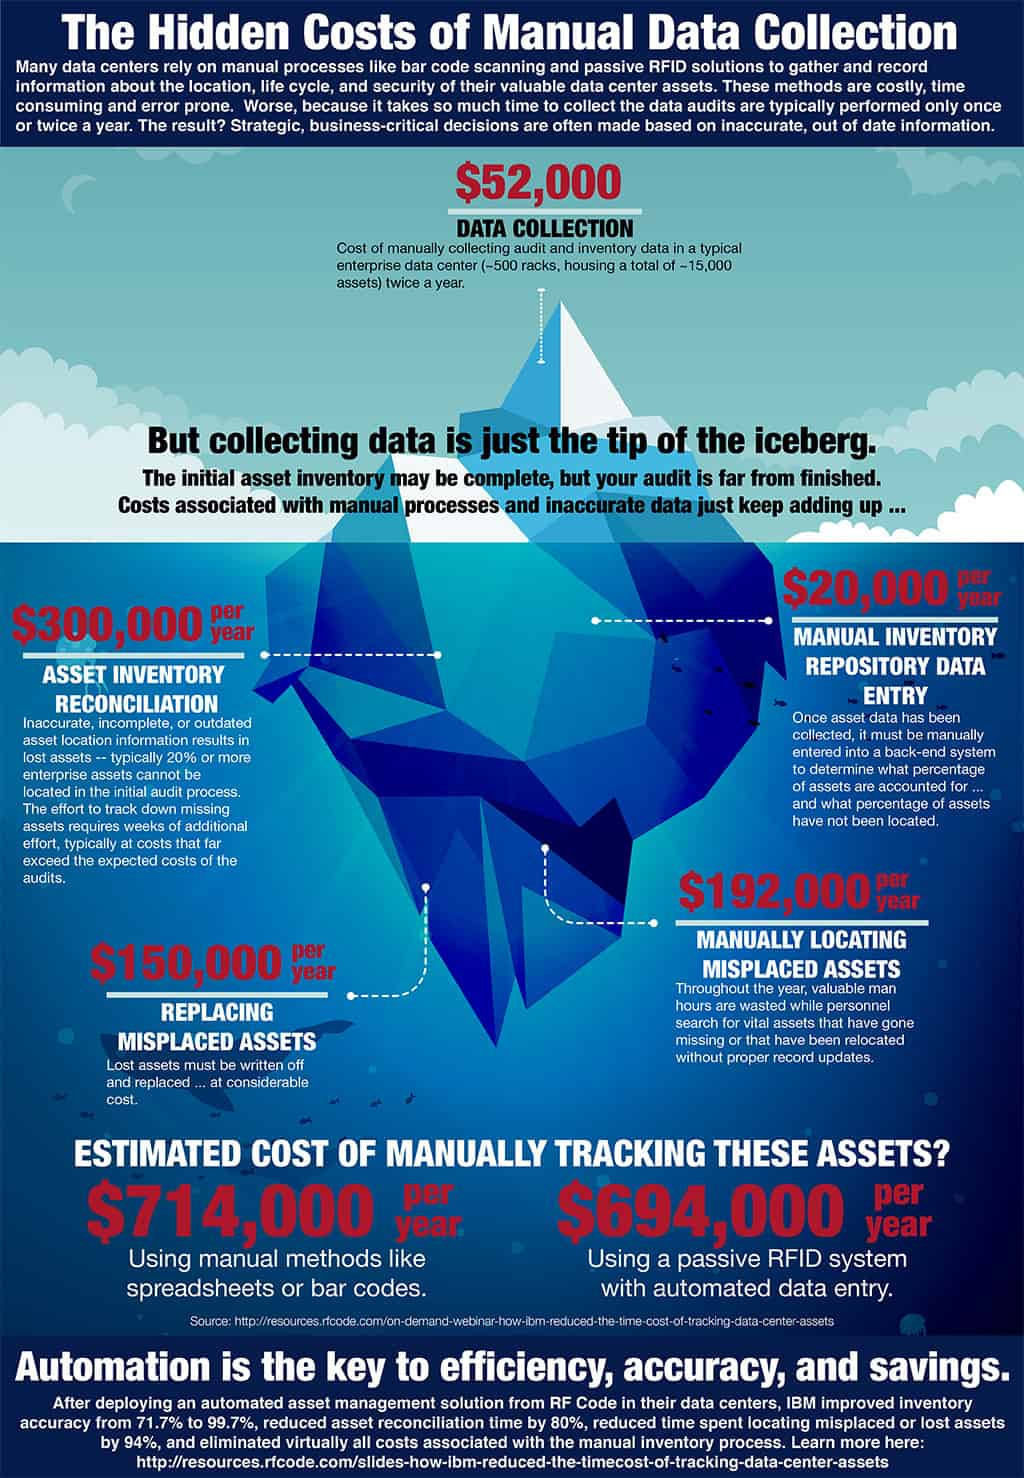 The Hidden Costs of Manual Data Collection - Dataconomy